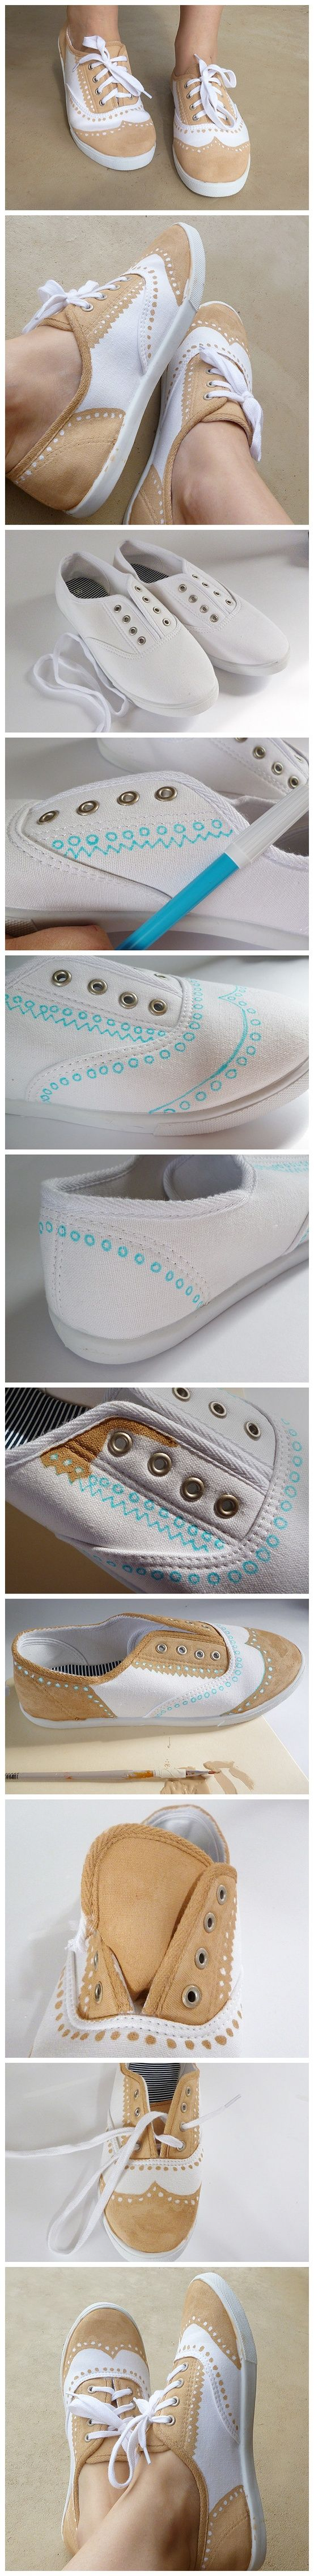 If you're feeling fashion inspired, decorate your own shoes.